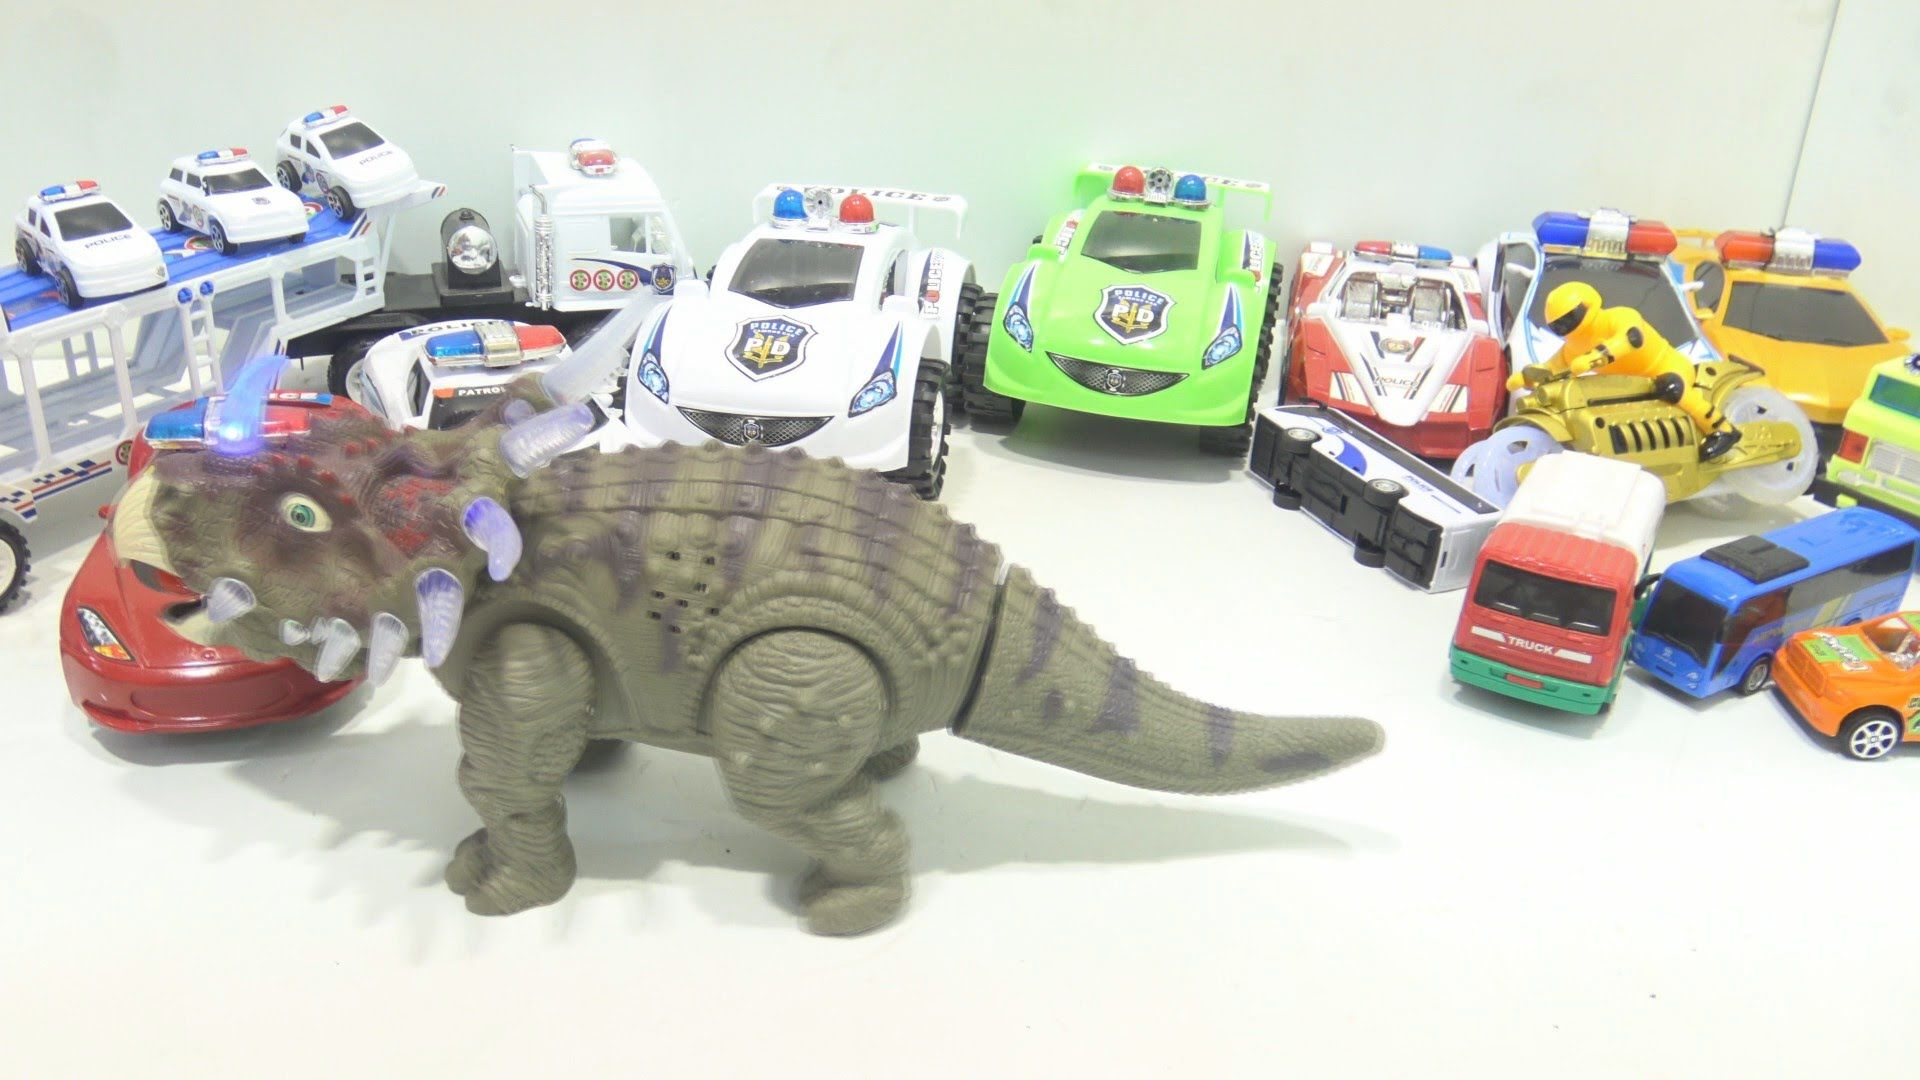 Toys images for kids  Videos for kids u Friendly dinosaur help the motocycle and cars